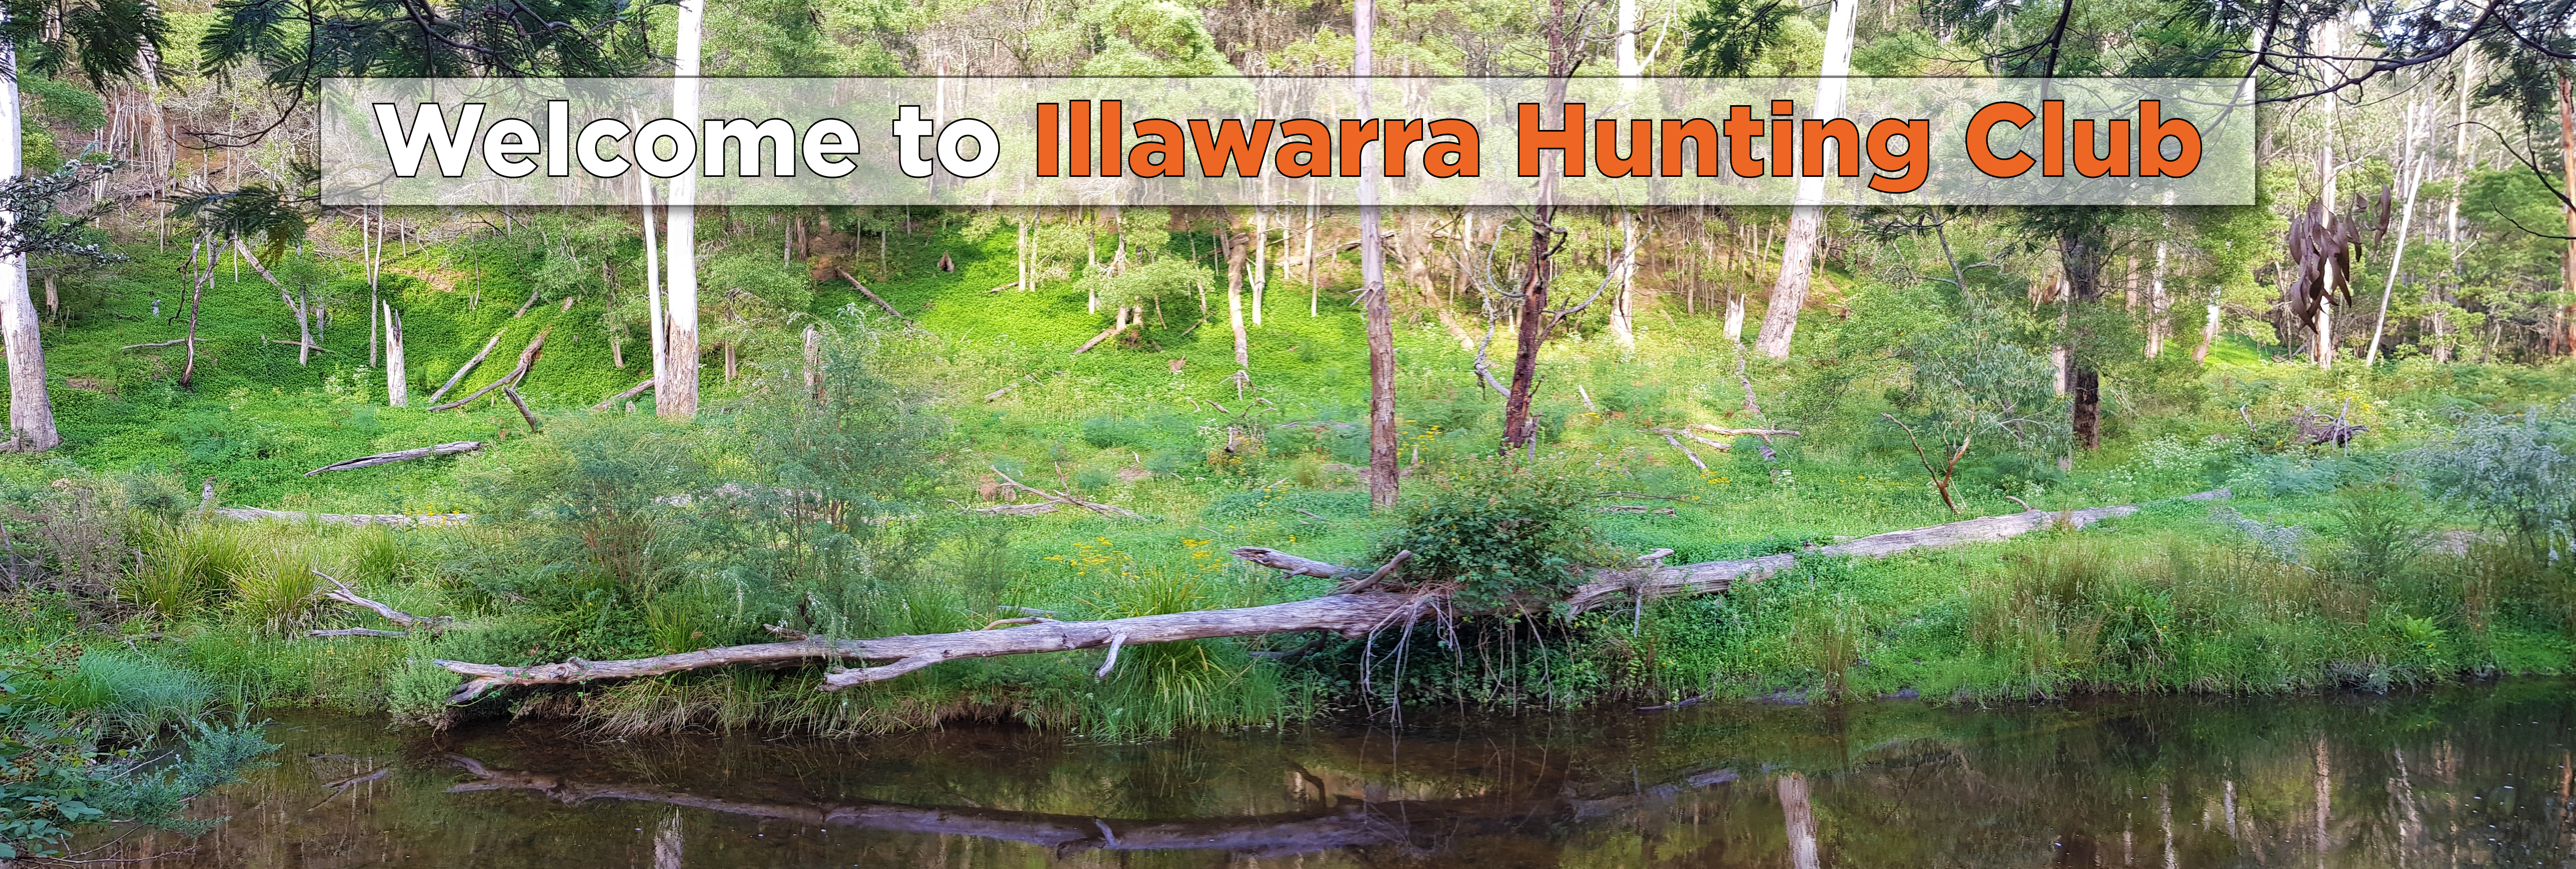 Welcome to Illawarra Hunting Club